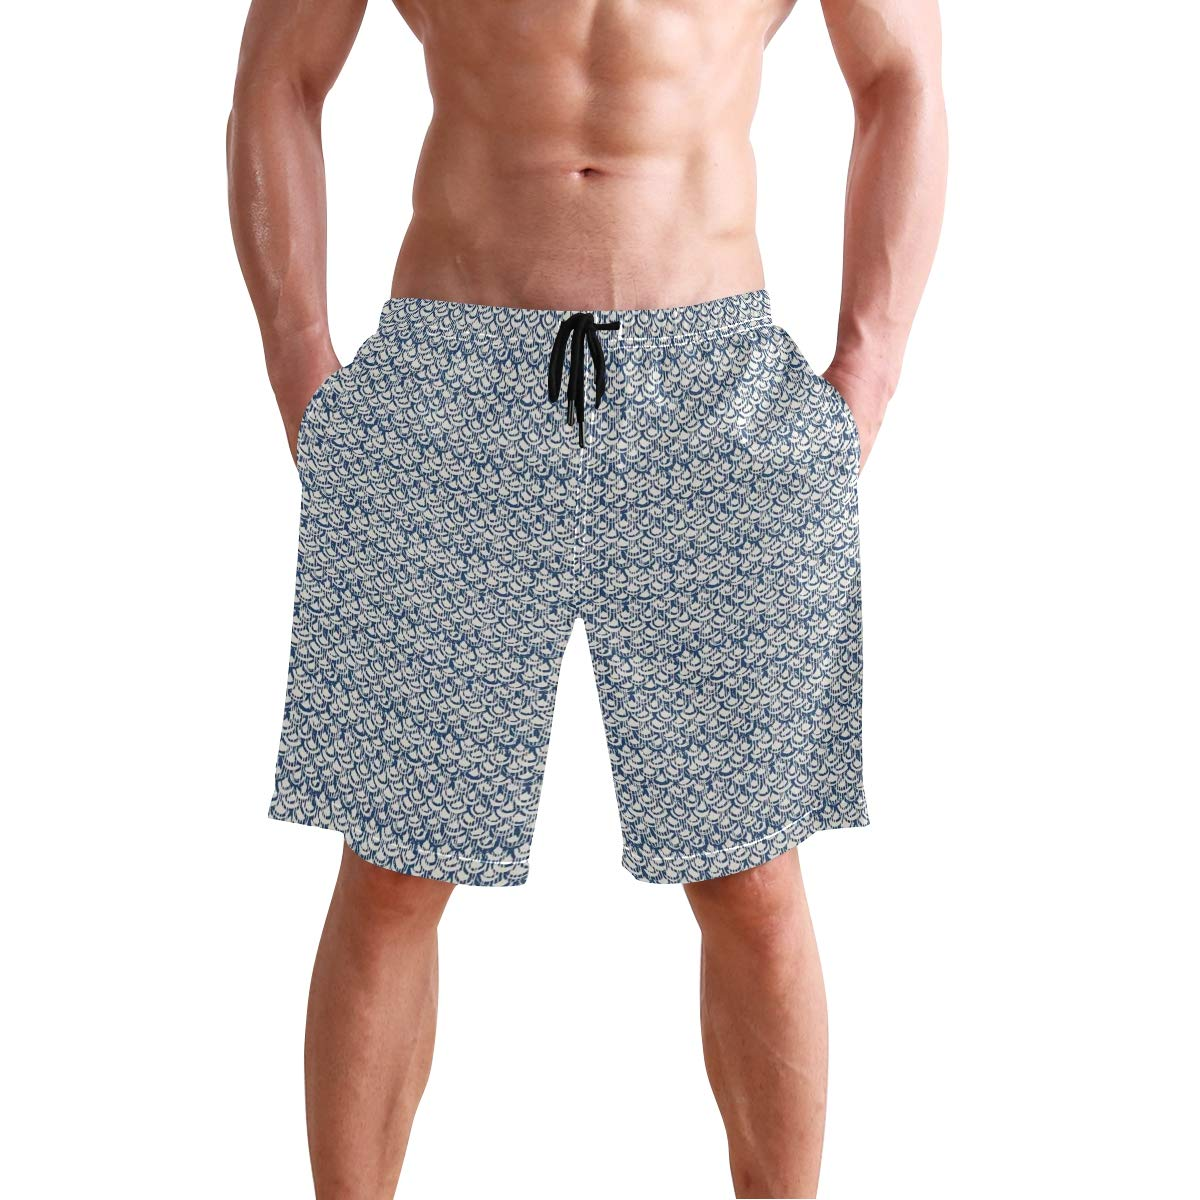 KVMV Far Eastern Scales Messy Curves with Vertical Stripes and Grungy 5size Beach Shorts